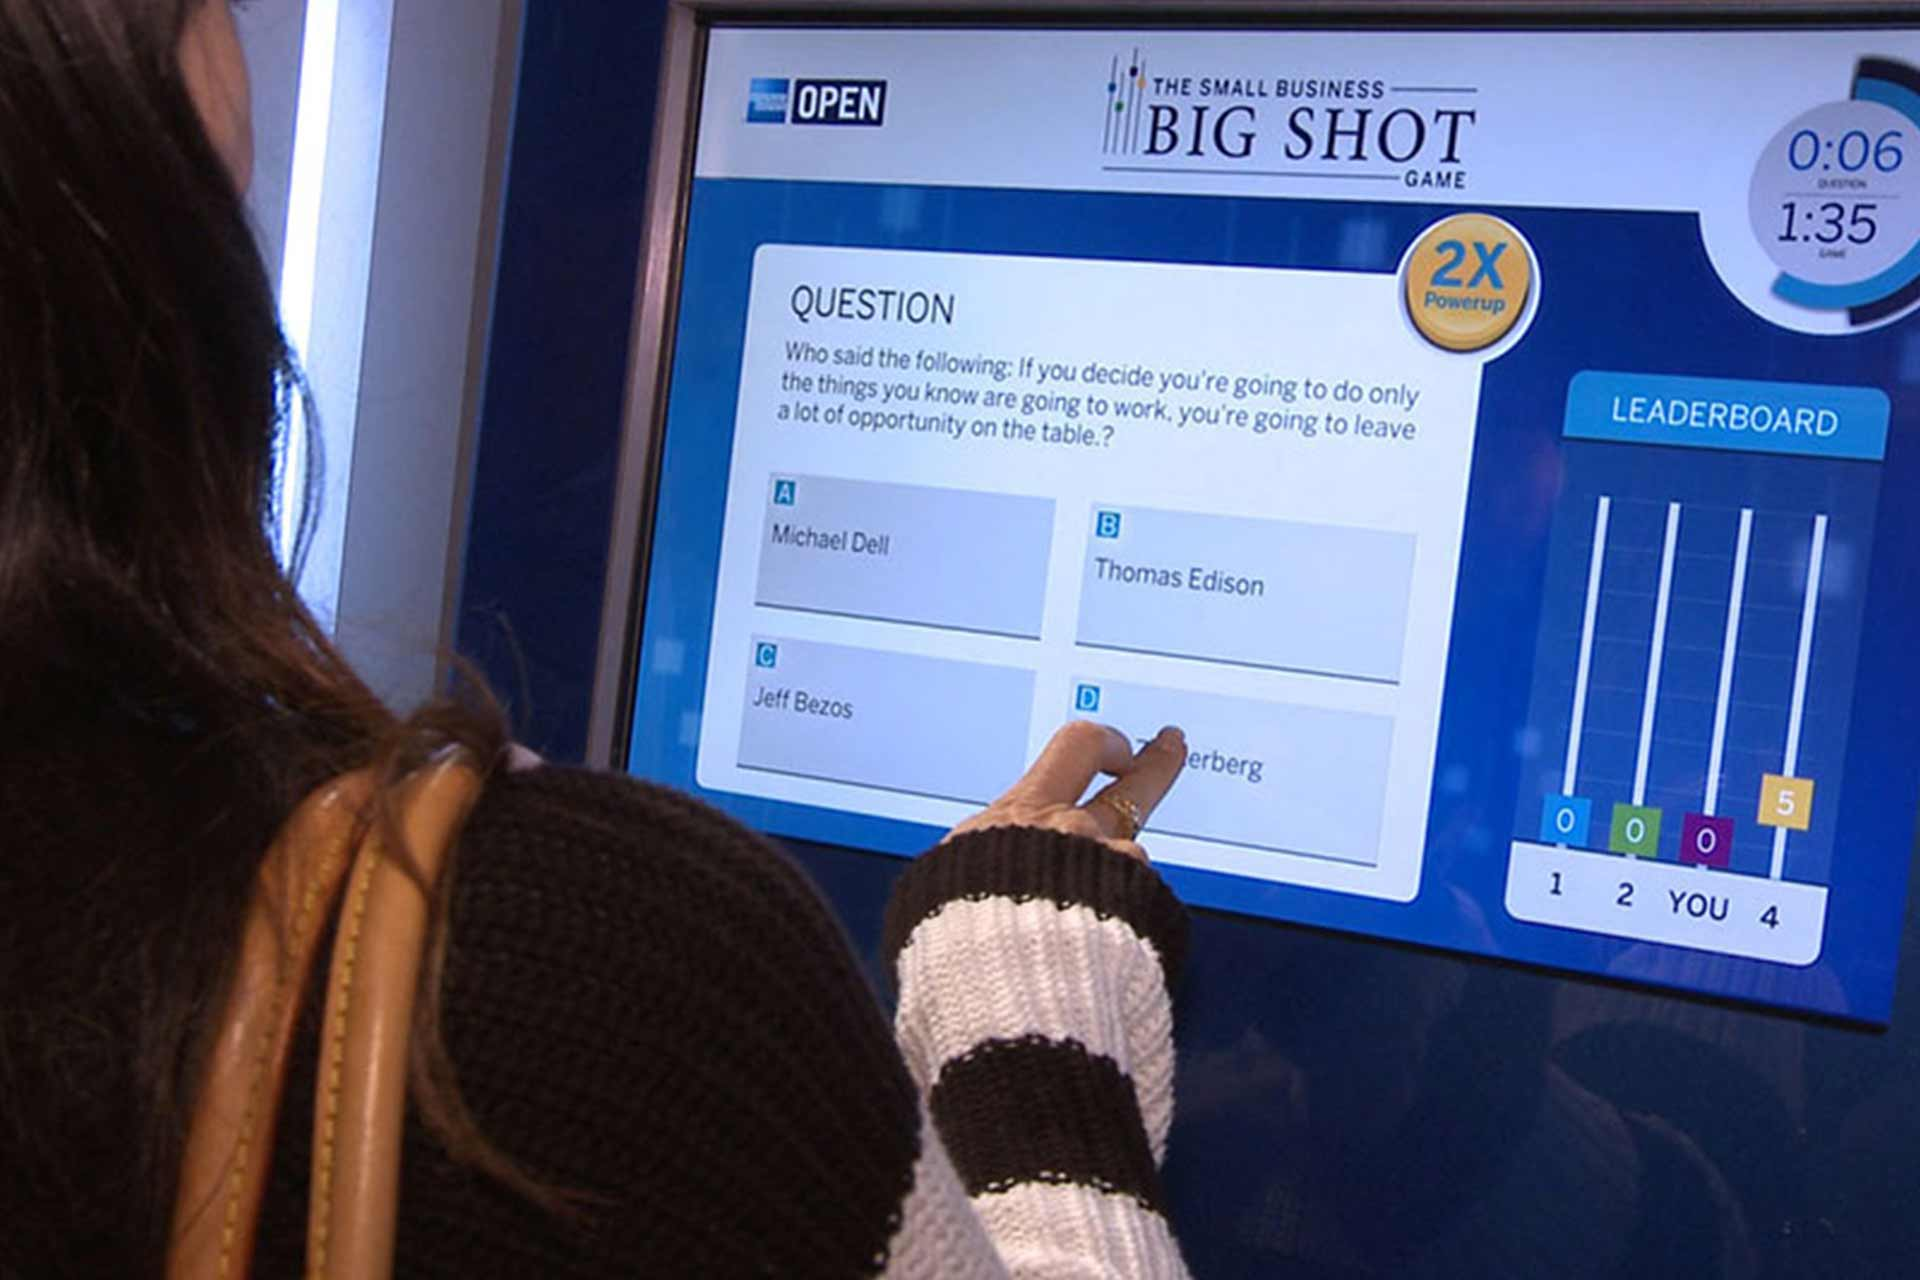 interactive-amex ces 03